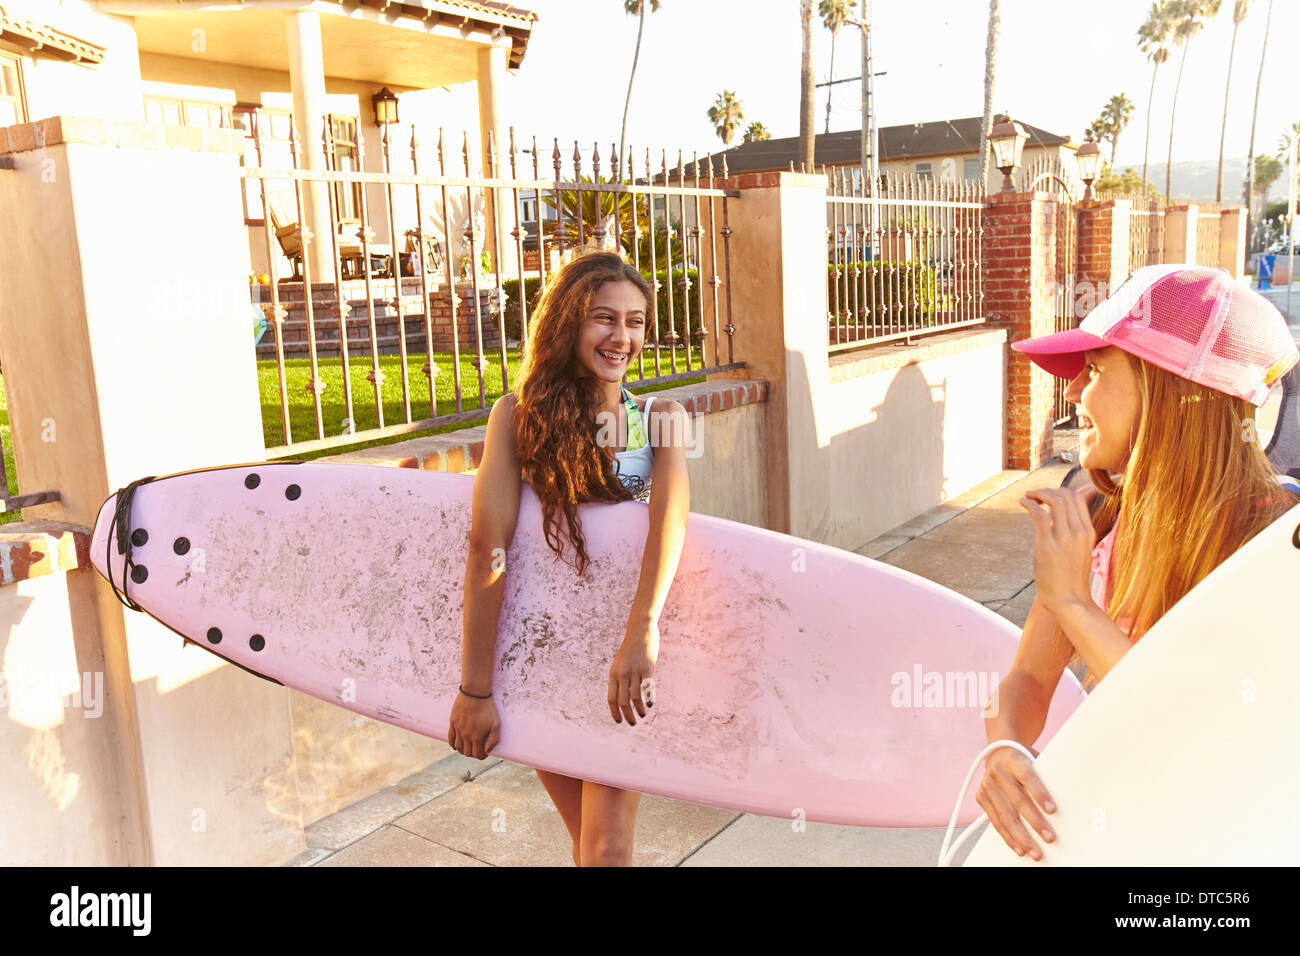 Two girls carrying surfboards laughing and smiling - Stock Image